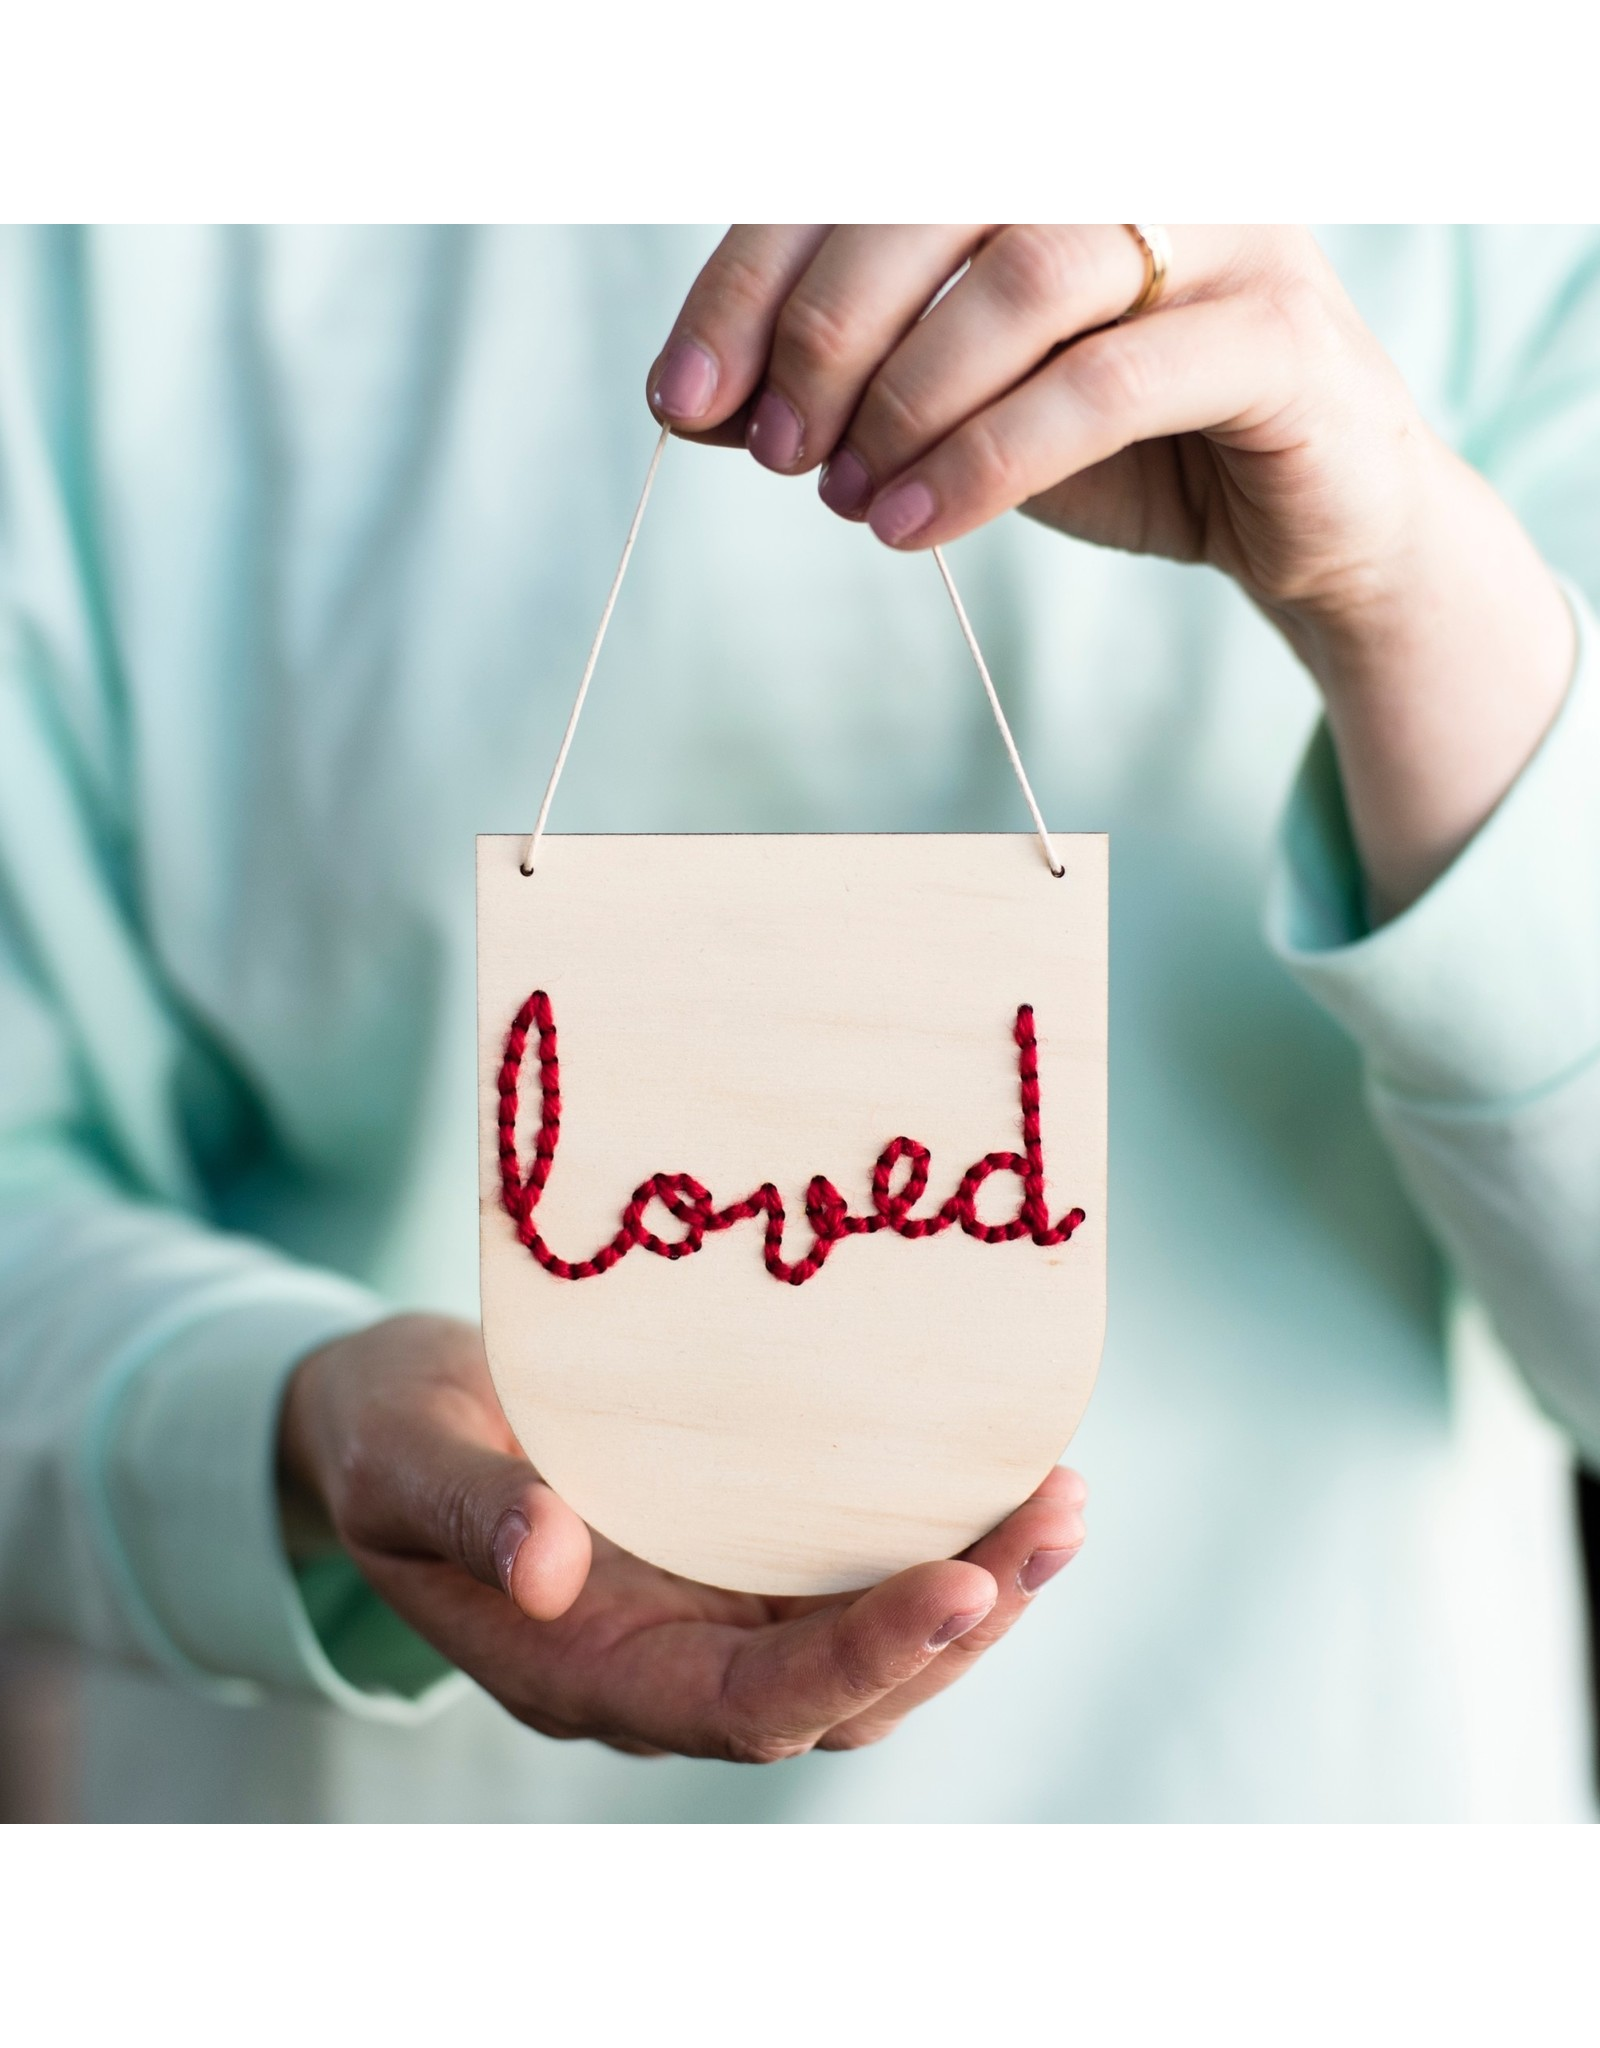 Cotton Clara Loved Embroidery Banner Kit - Red